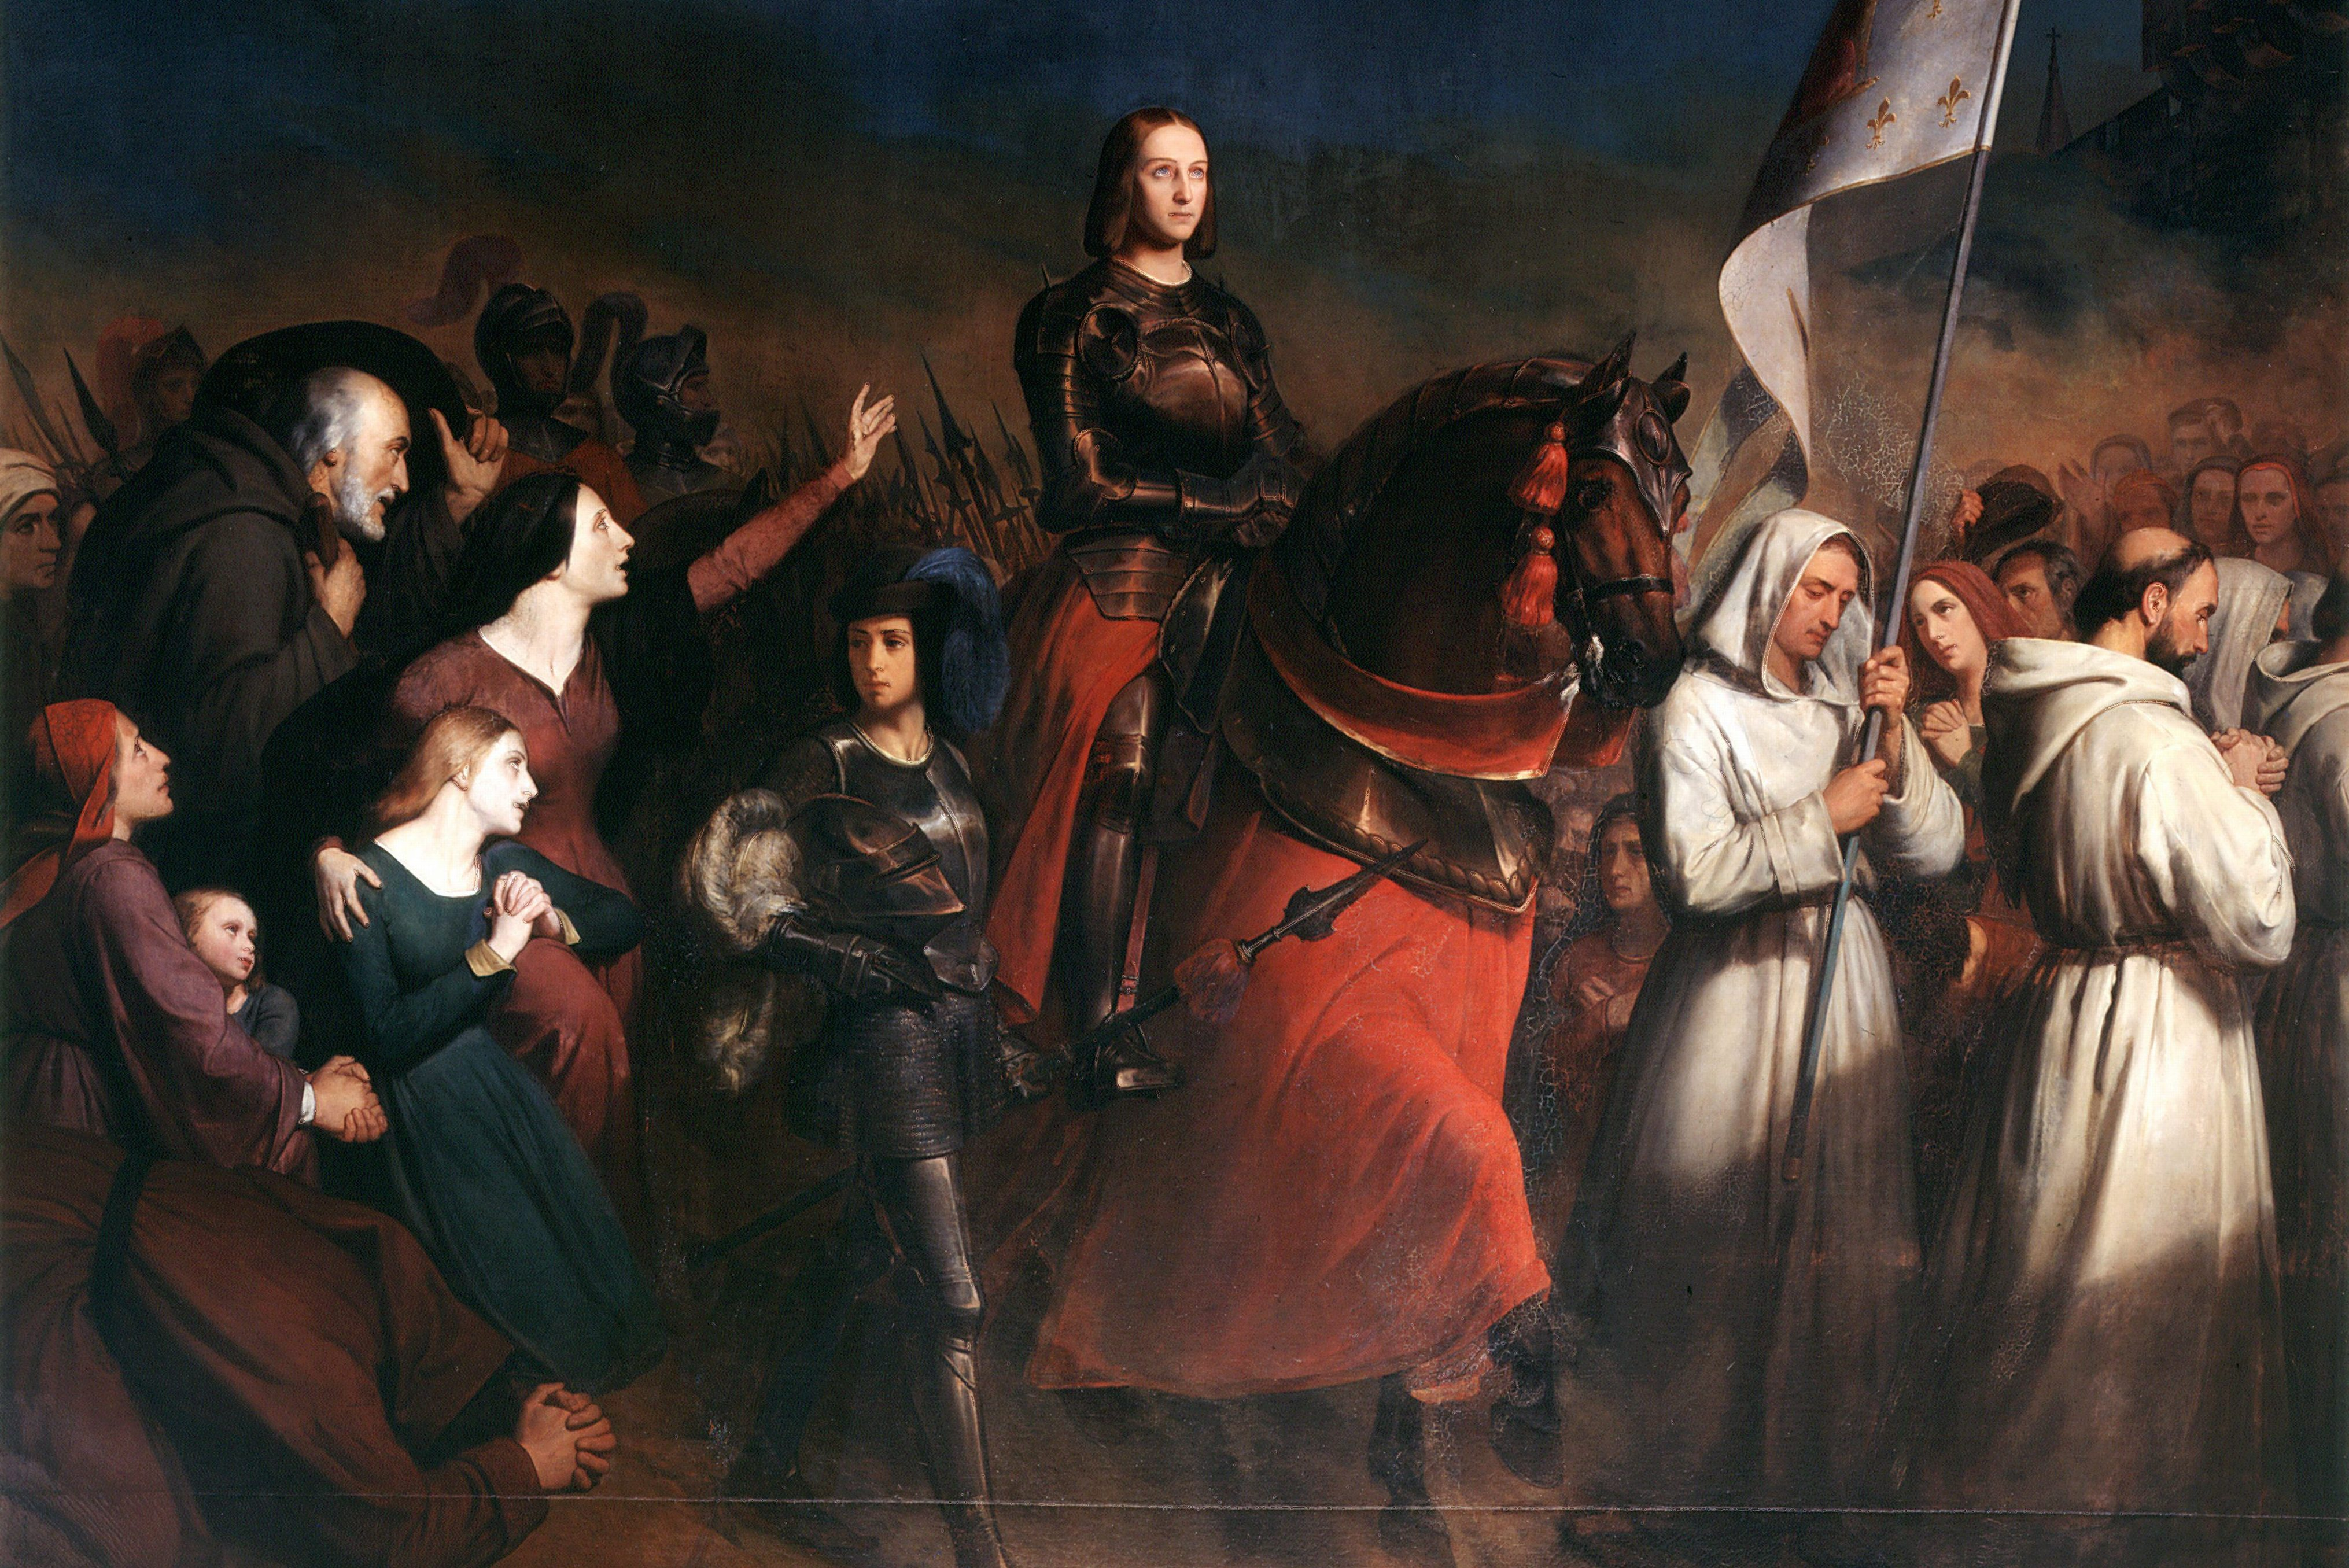 Mandatory Credit: Photo by Universal History Archive/UIG/Shutterstock (2548503a) 'Joan of Arc's entry into Orleans, Evening of the Liberation of the Town, 8 May 1429'. St Joan (c1412-1431) Maid of Orleans, French patriot and martyr, mounted and in full armour. Henry Sheffer (1798-1862) French. Painting. Oil on canvas. Versailles. History